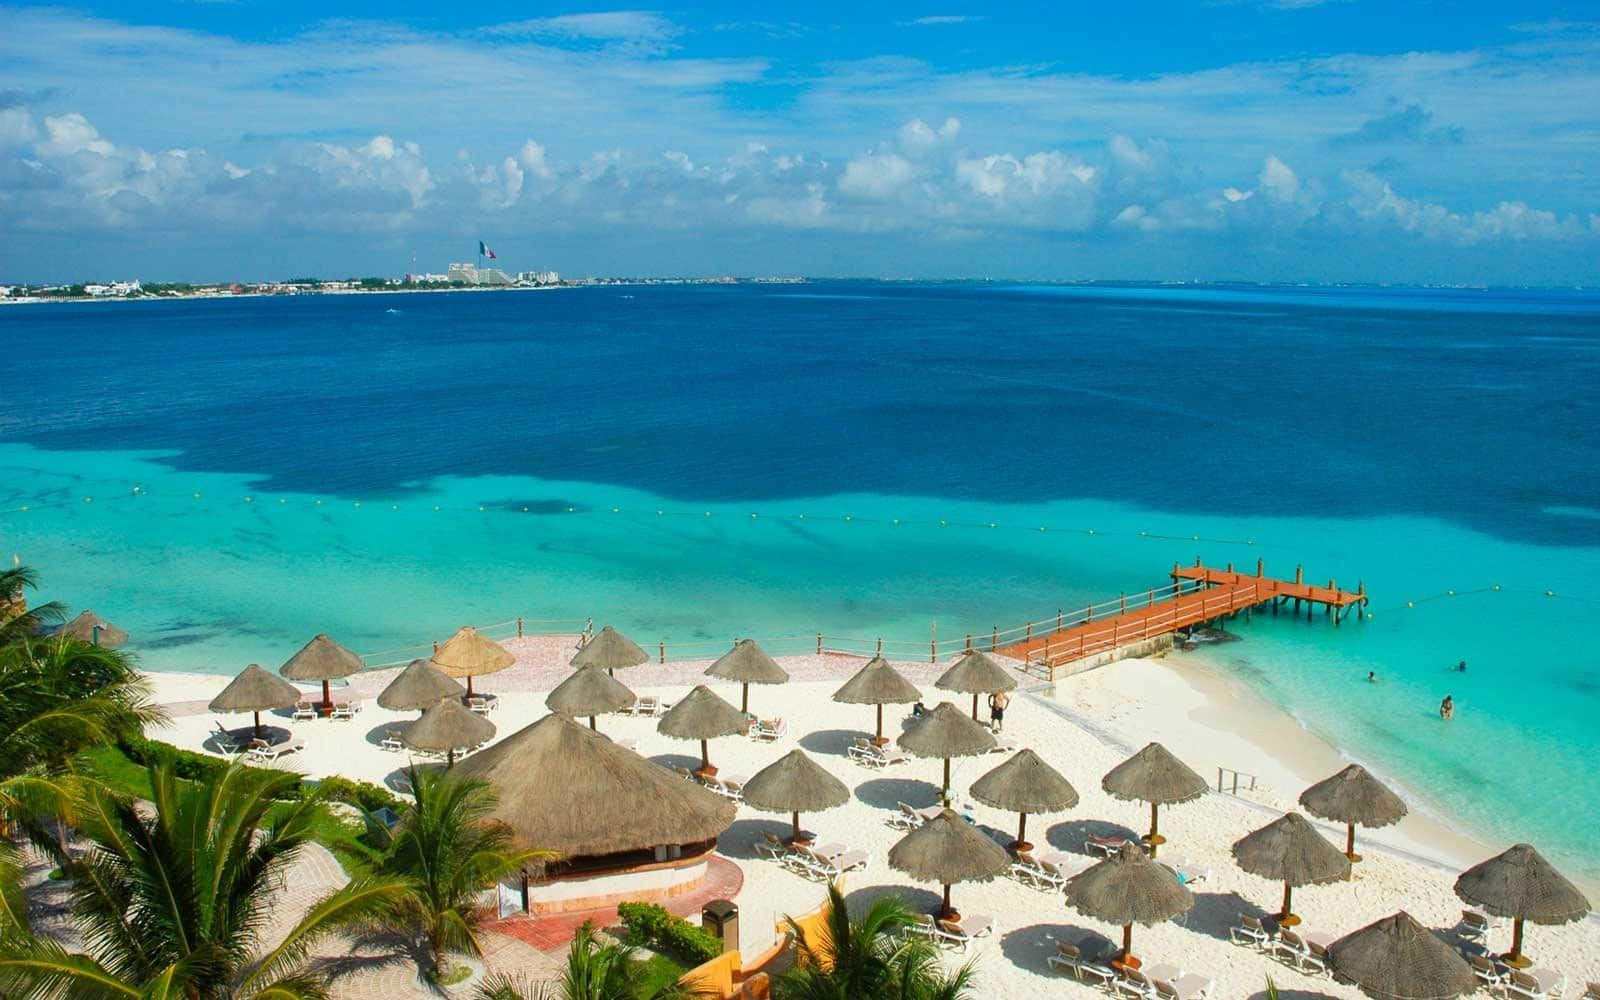 Intro Fare!  Sacramento to Cancun Mexico $267 RT Nonstop Airfares on JetBlue Airways (Travel March - May 2021)